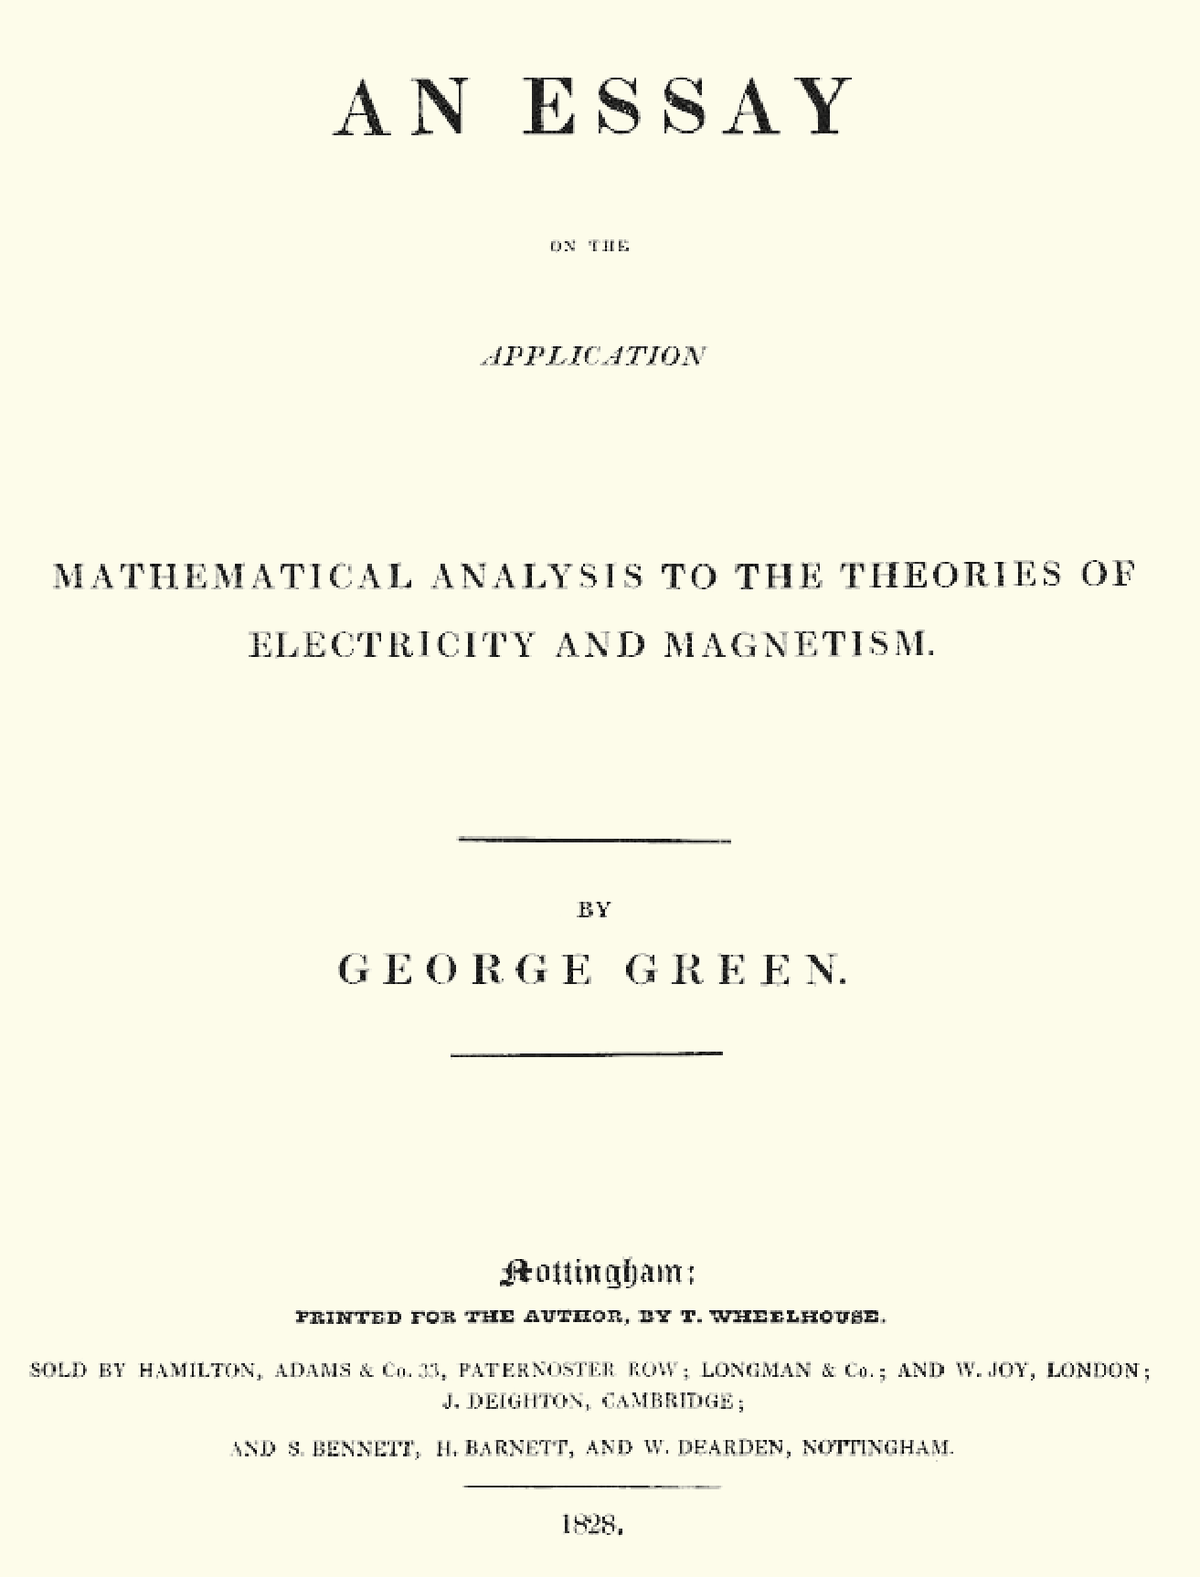 an essay on the application of mathematical analysis to the theories  an essay on the application of mathematical analysis to the theories of  electricity and magnetism   wikipedia